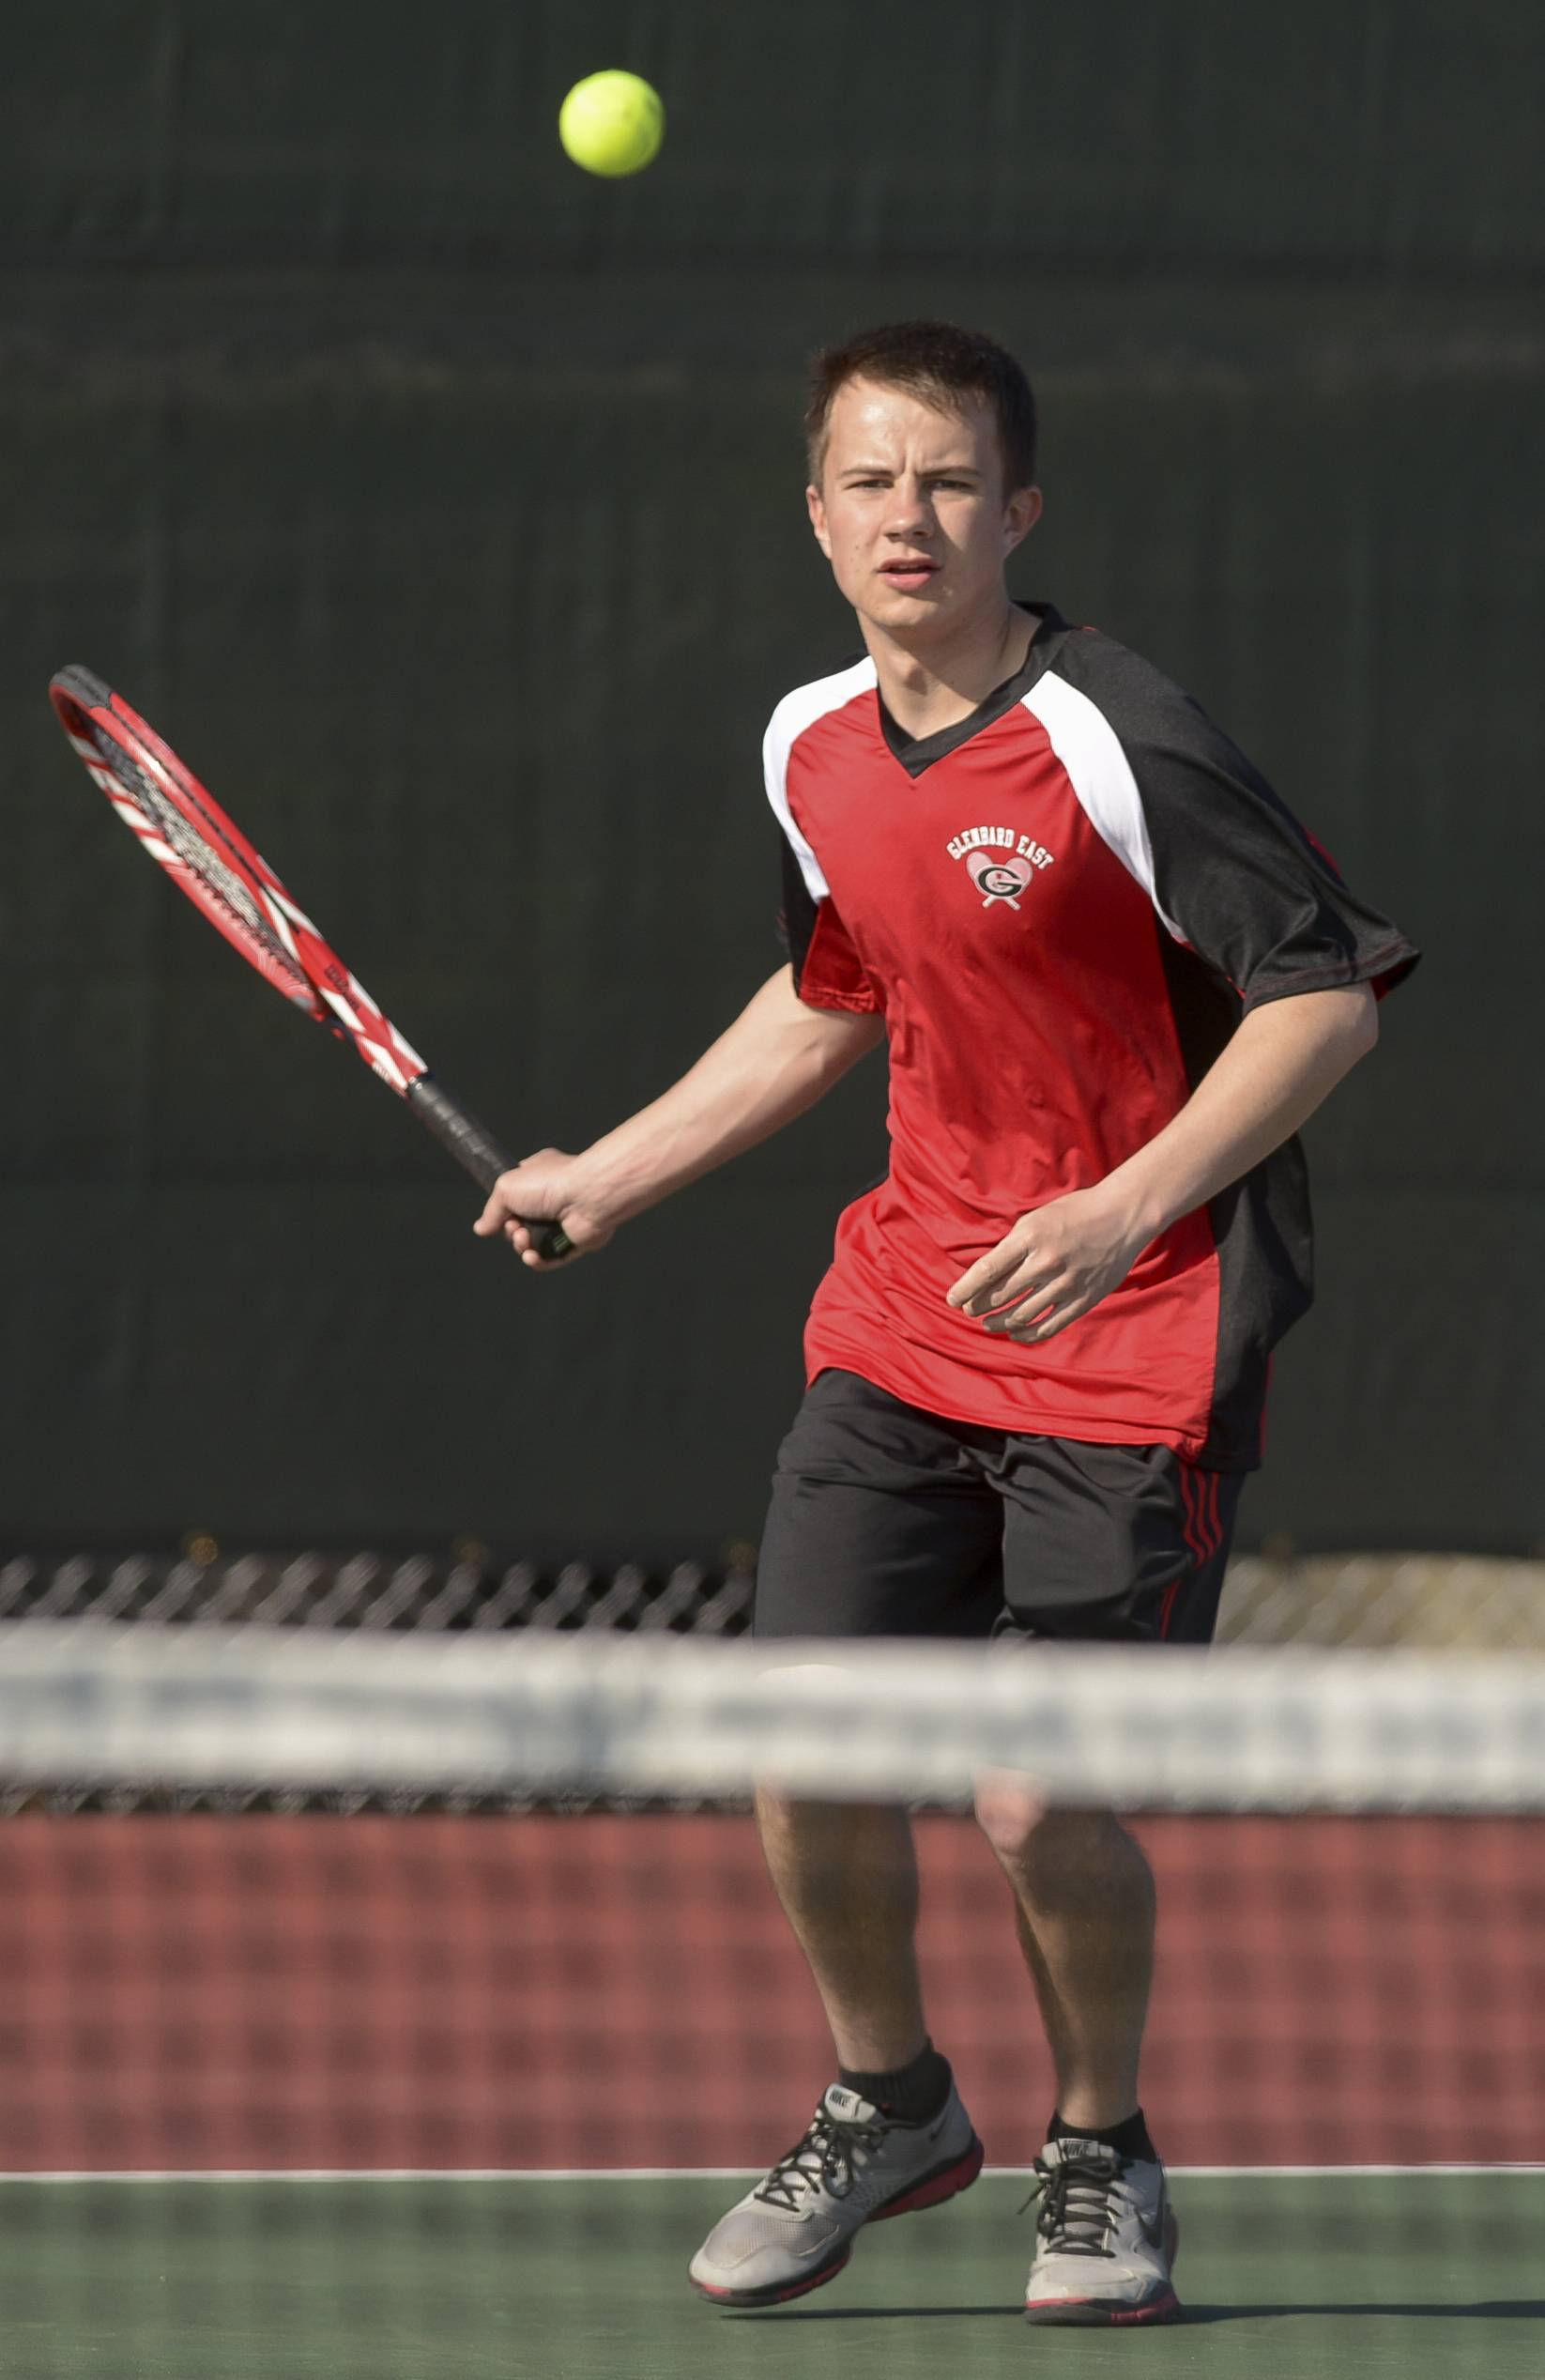 Glenbard East's Krystian Nowloka keeps an eye on the ball during a match against Montini's Brian Konopacz during boys varsity tennis in Lombard.